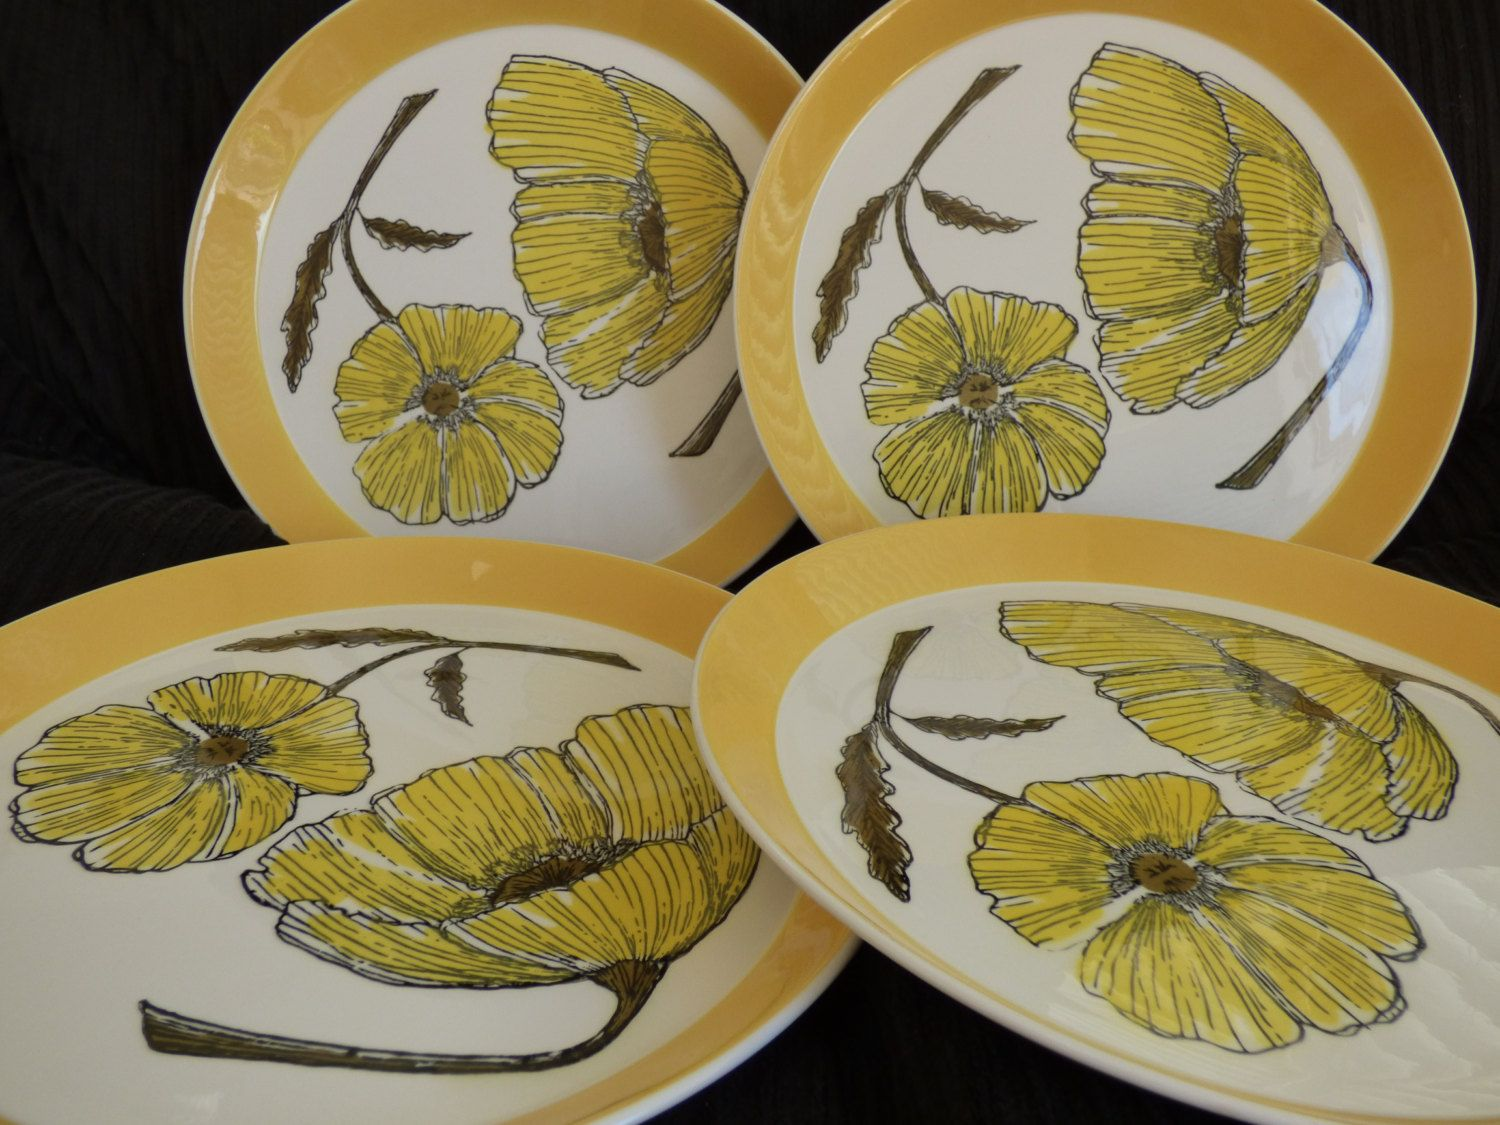 Mikasa Duplex Duet - Ben Seibel - 4 Dinner Plates - Superb Condition - No Damages - Bright Finish - Suitable for Gifting - Replacements by ChicAvantGarde on Etsy